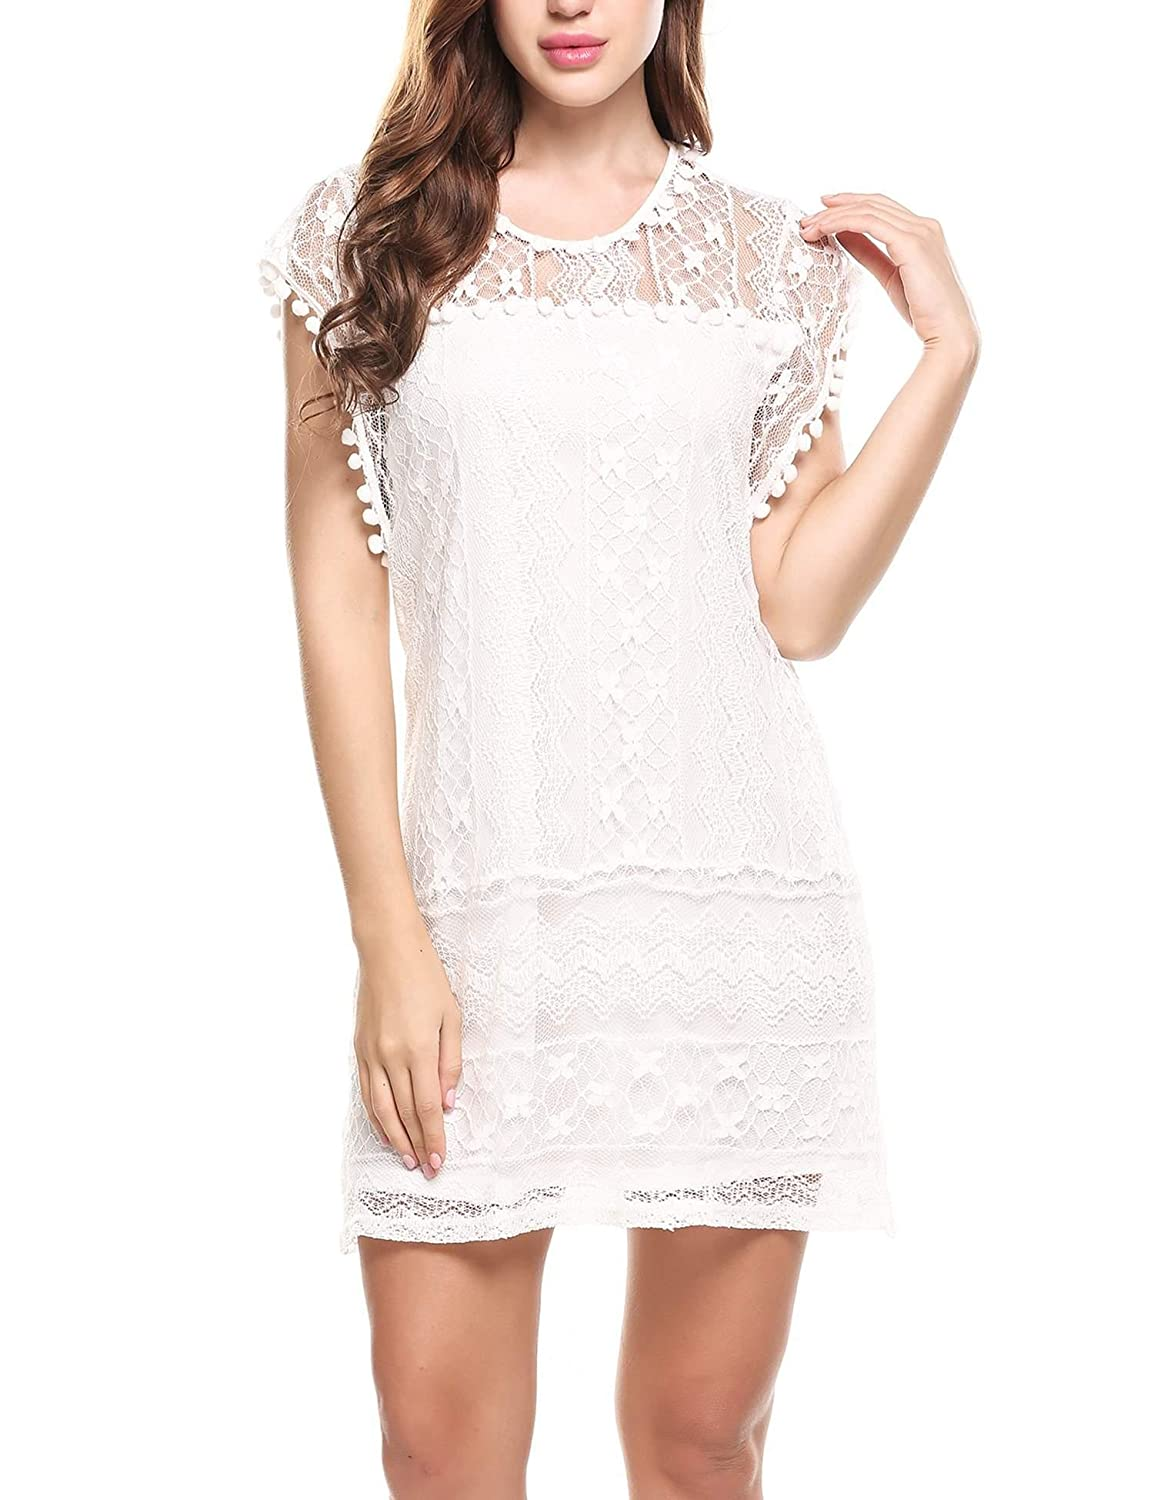 Meaneor Women Sheer Crew Neck Floral Lace Mini Party Cocktail Summer Dress #MAH010729